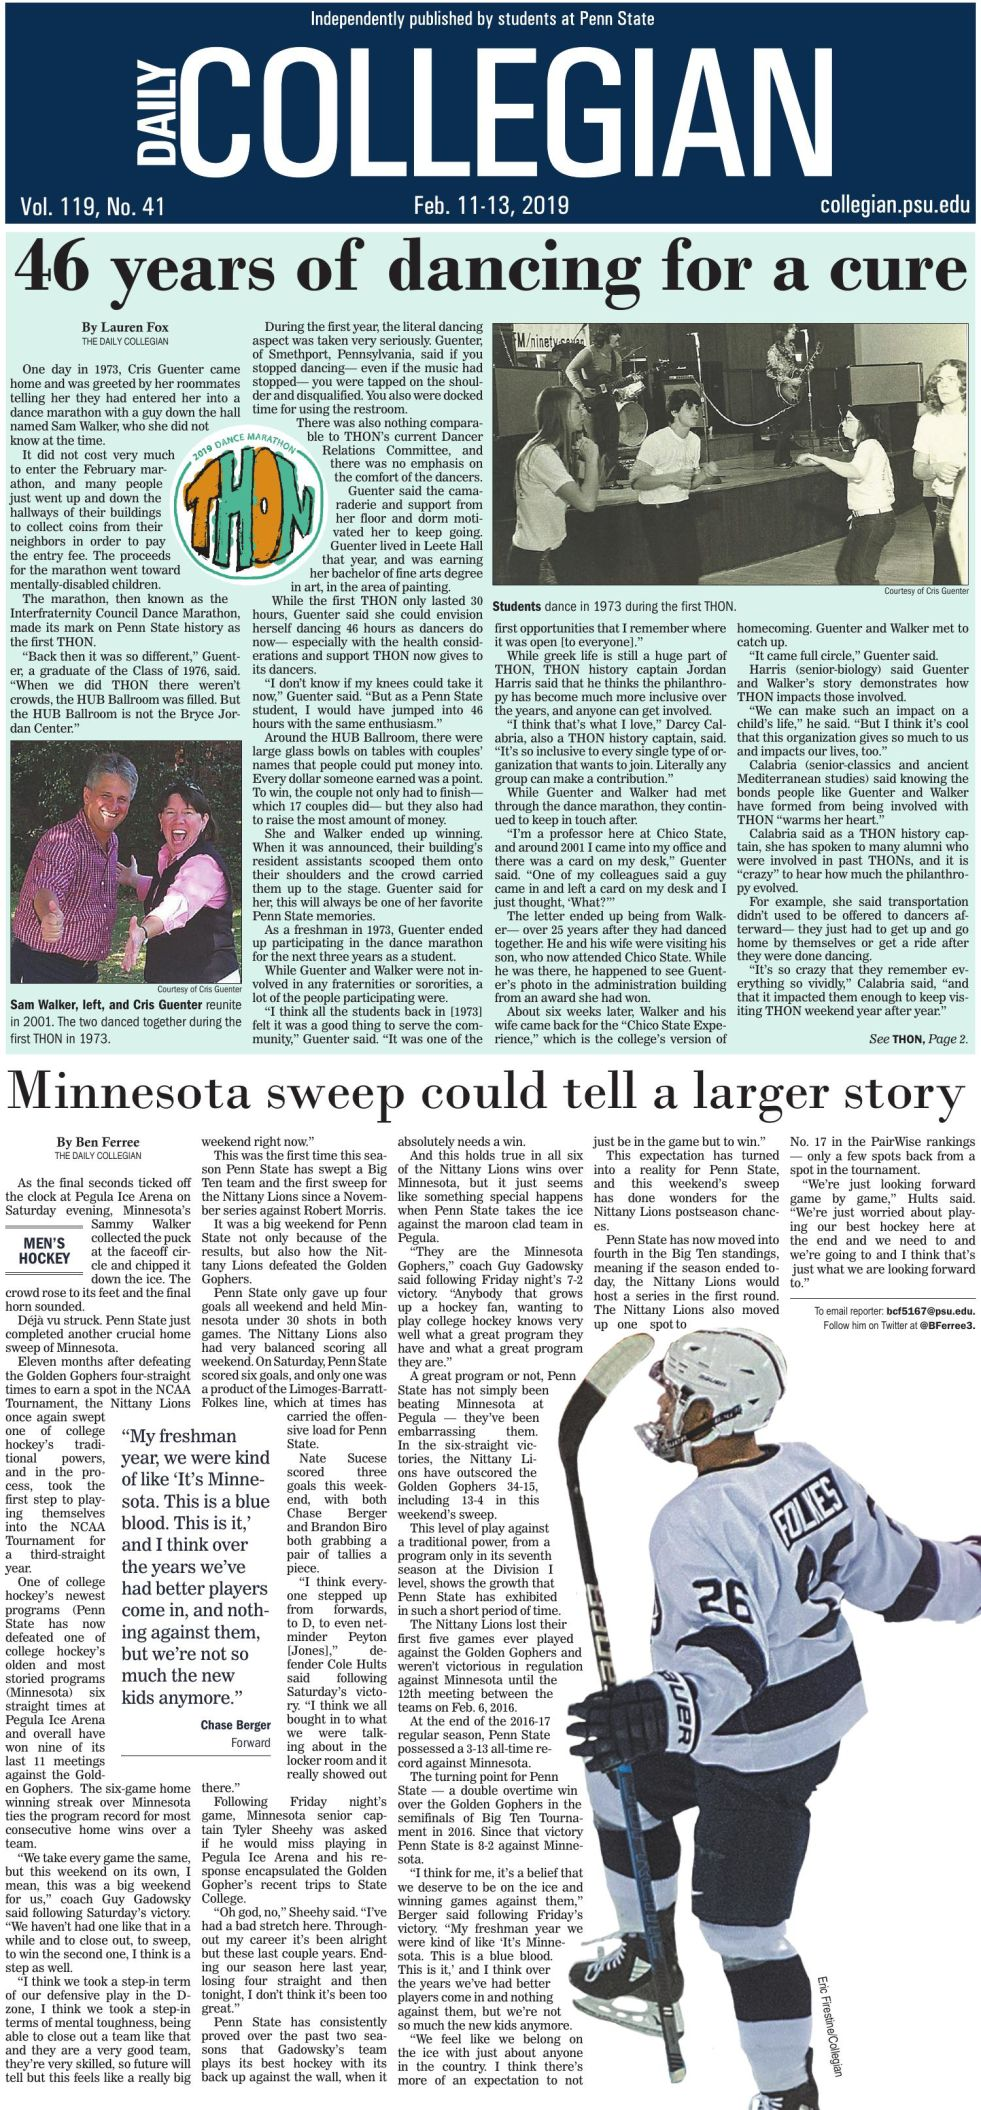 The Daily Collegian for Feb. 11, 2019